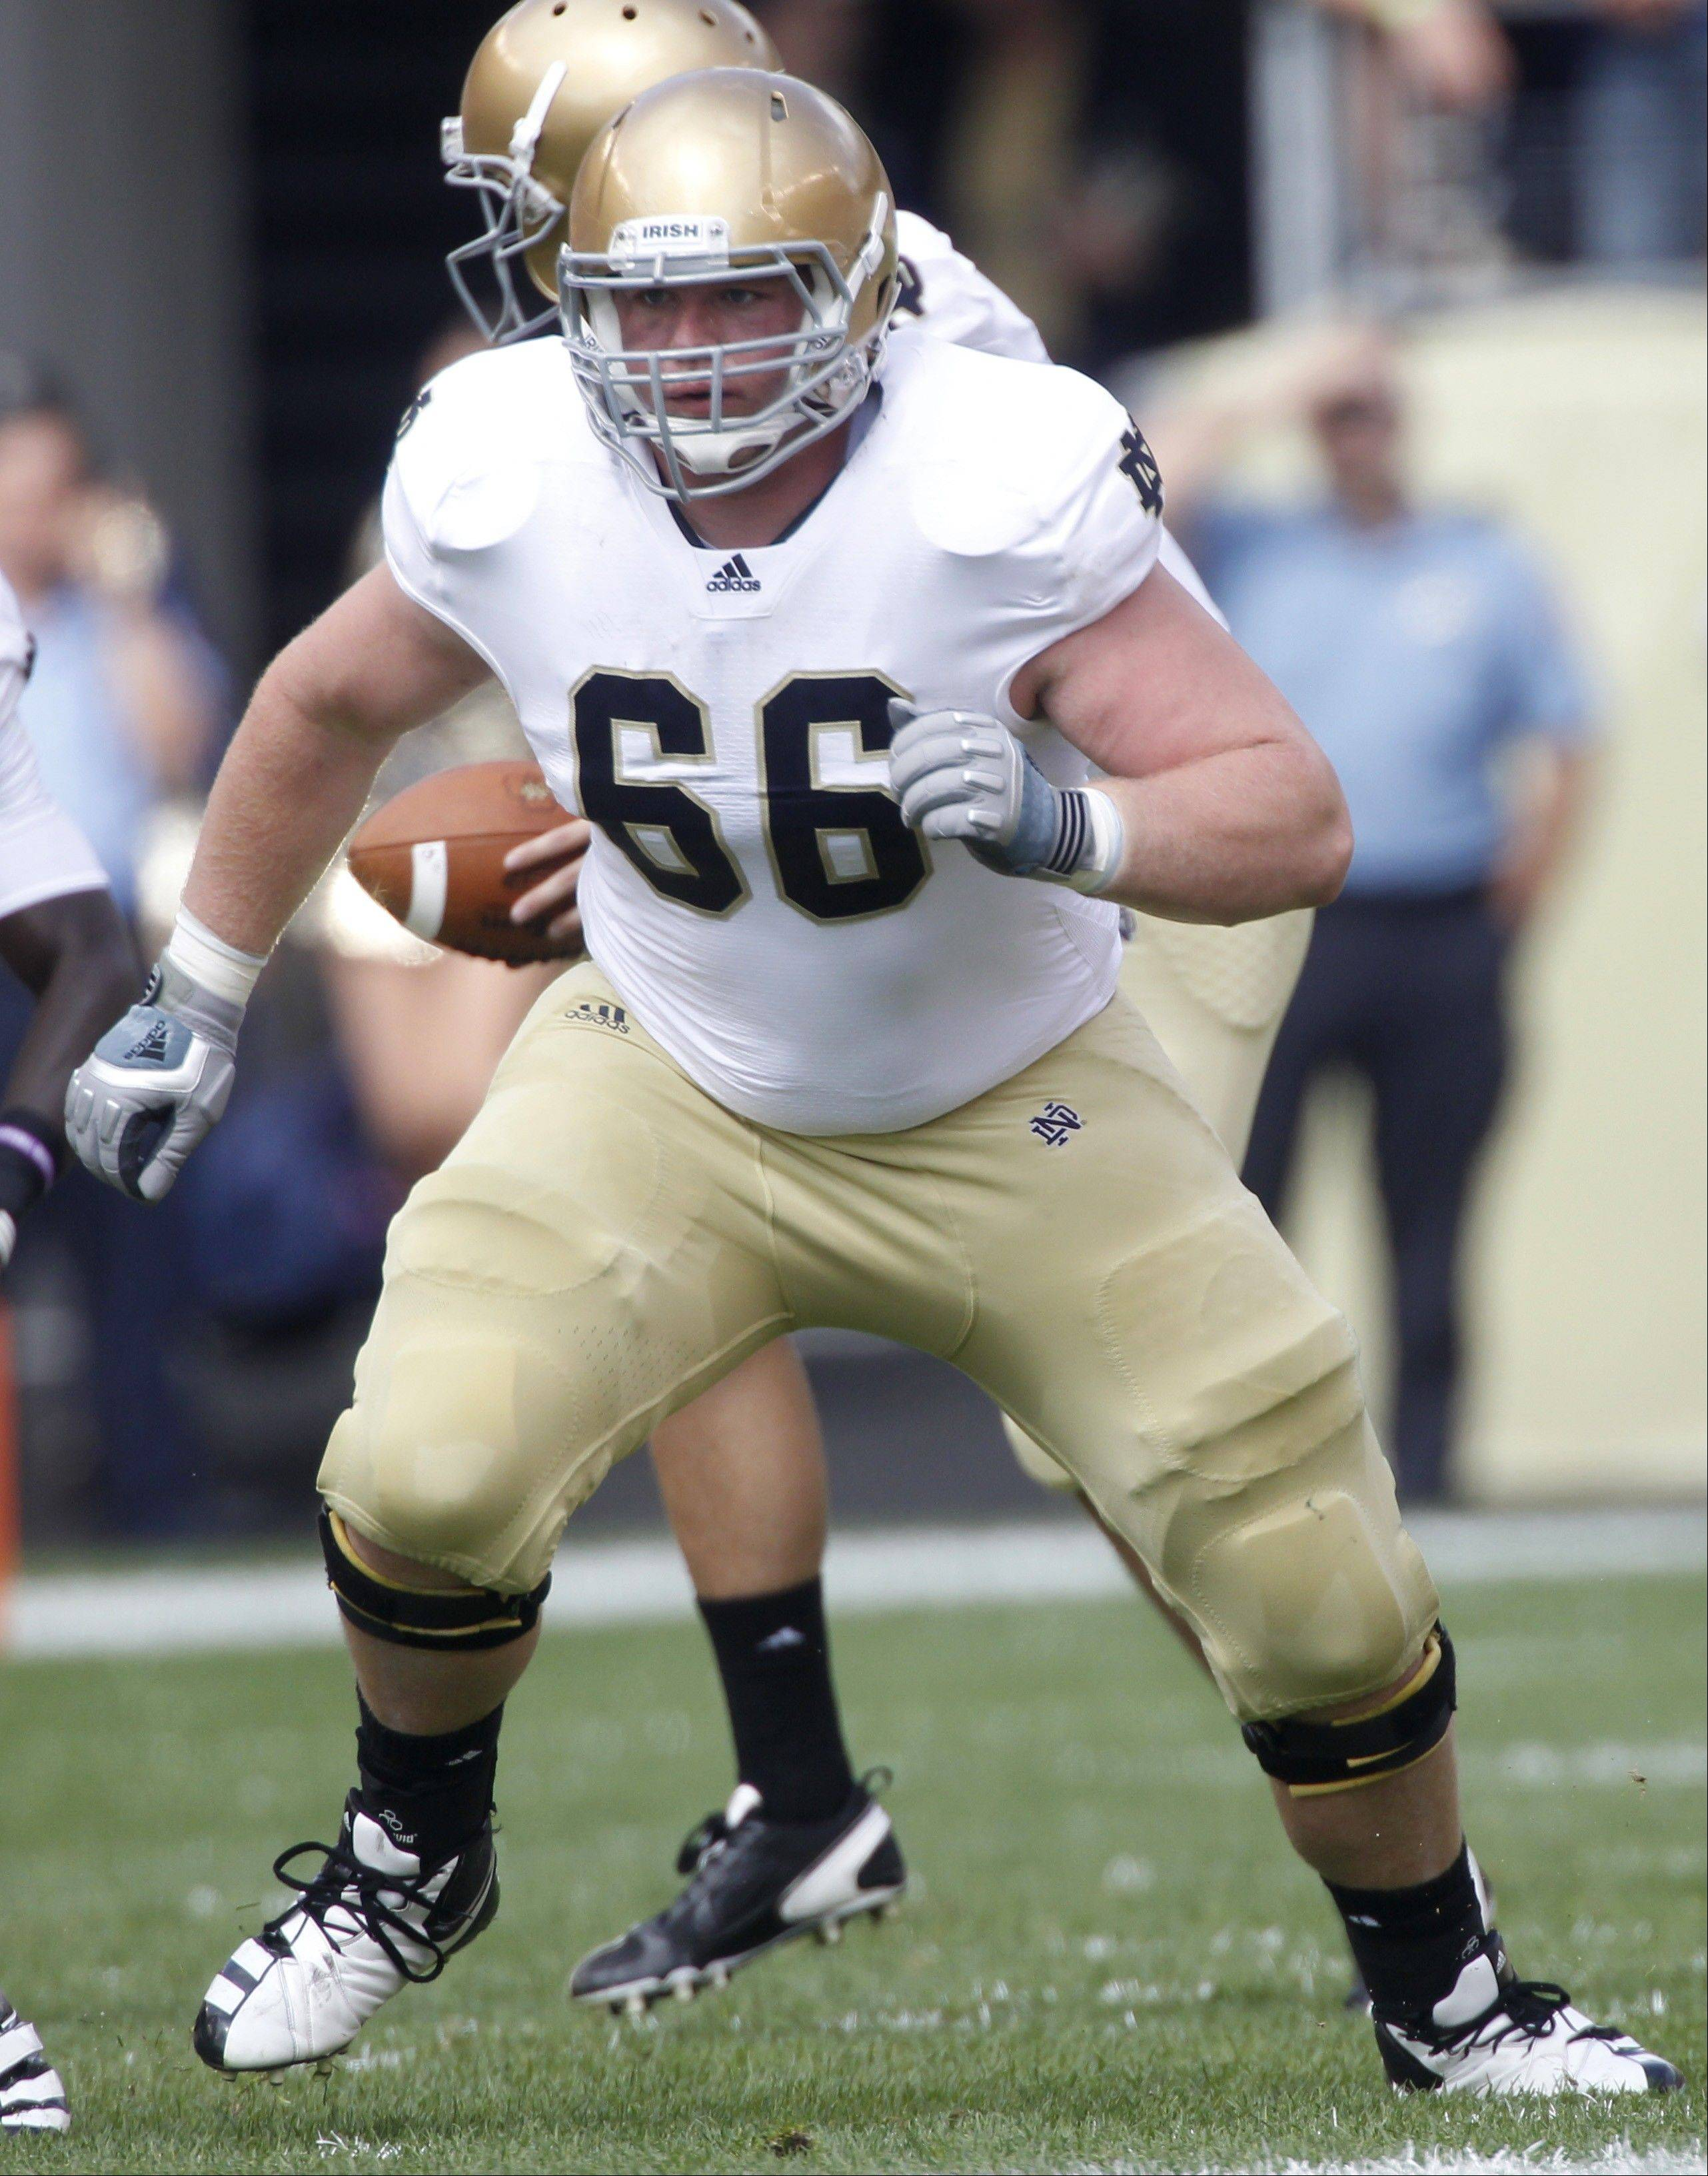 Offensive guard Chris Watt, who stands 6-feet-3 and weighs 310 pounds, will try to open some big holes for Notre Dame running backs against Alabama in today's BCS national championship.